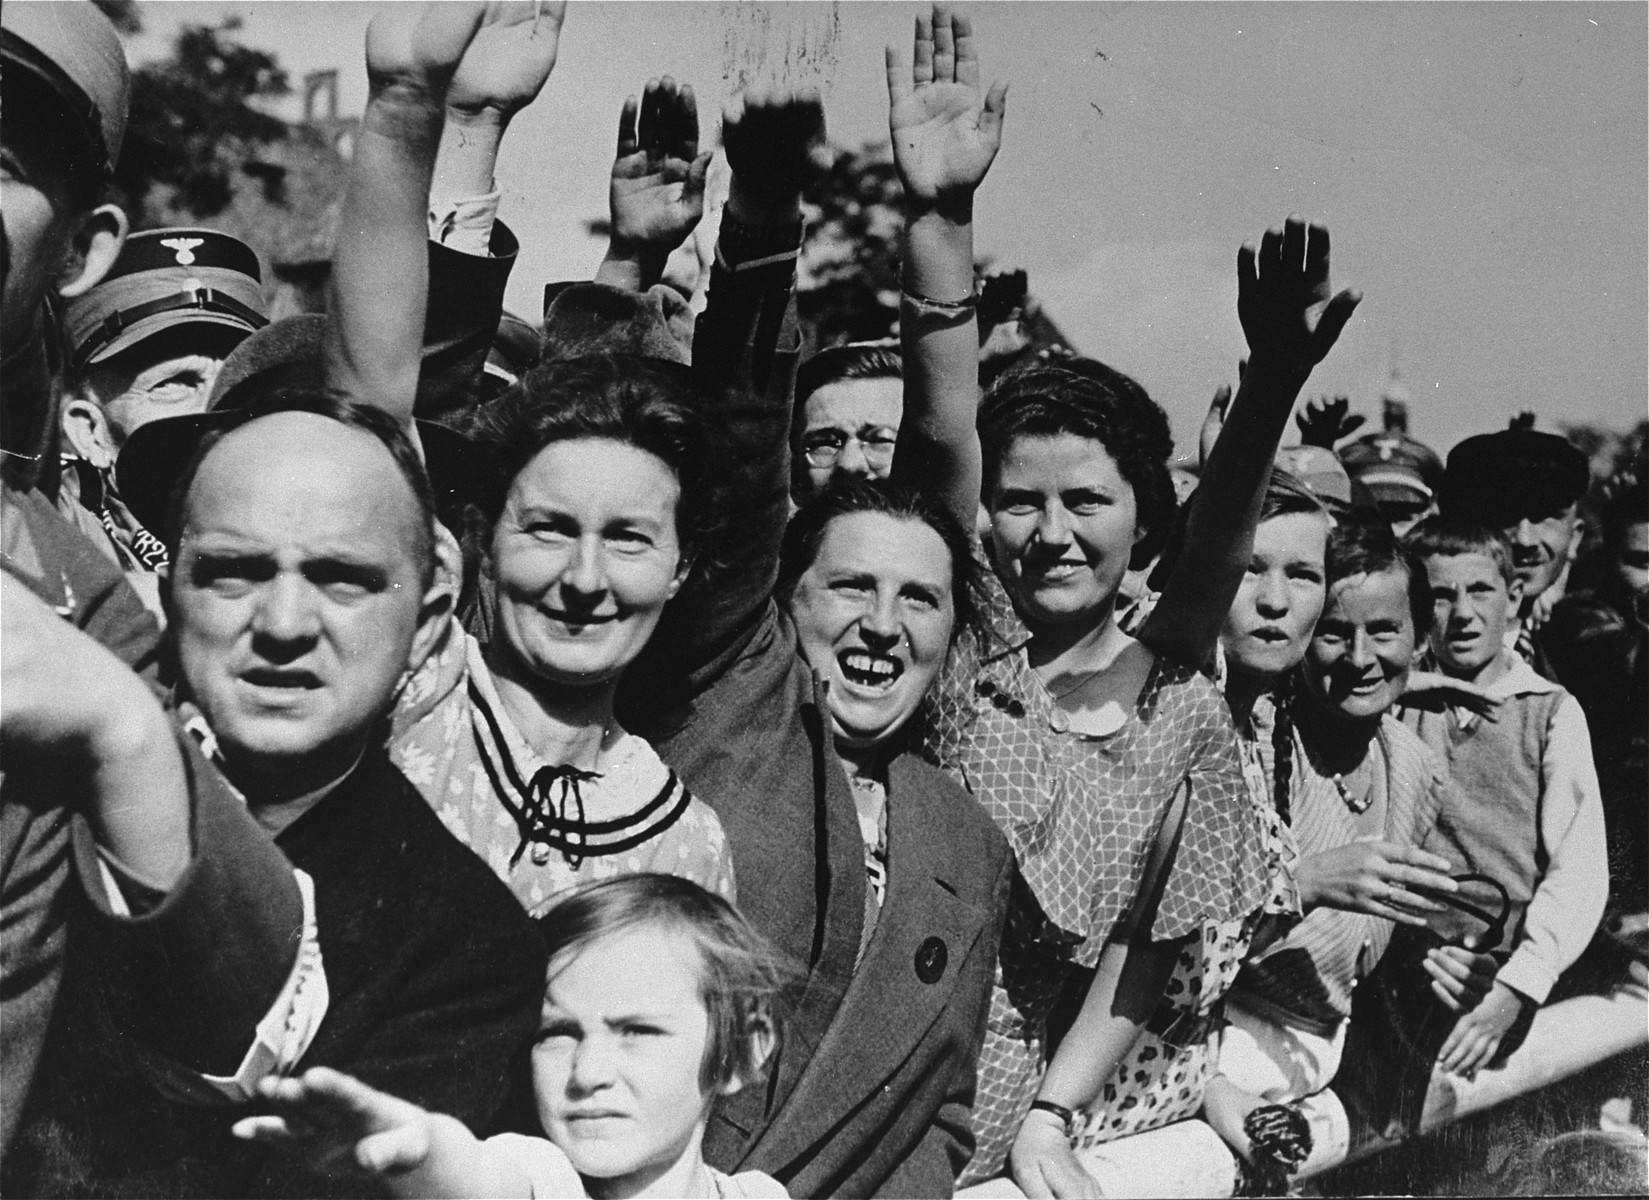 German spectators give the Nazi salute as they watch a Reichsparteitag (Reich Party Day) parade in Nuremberg.